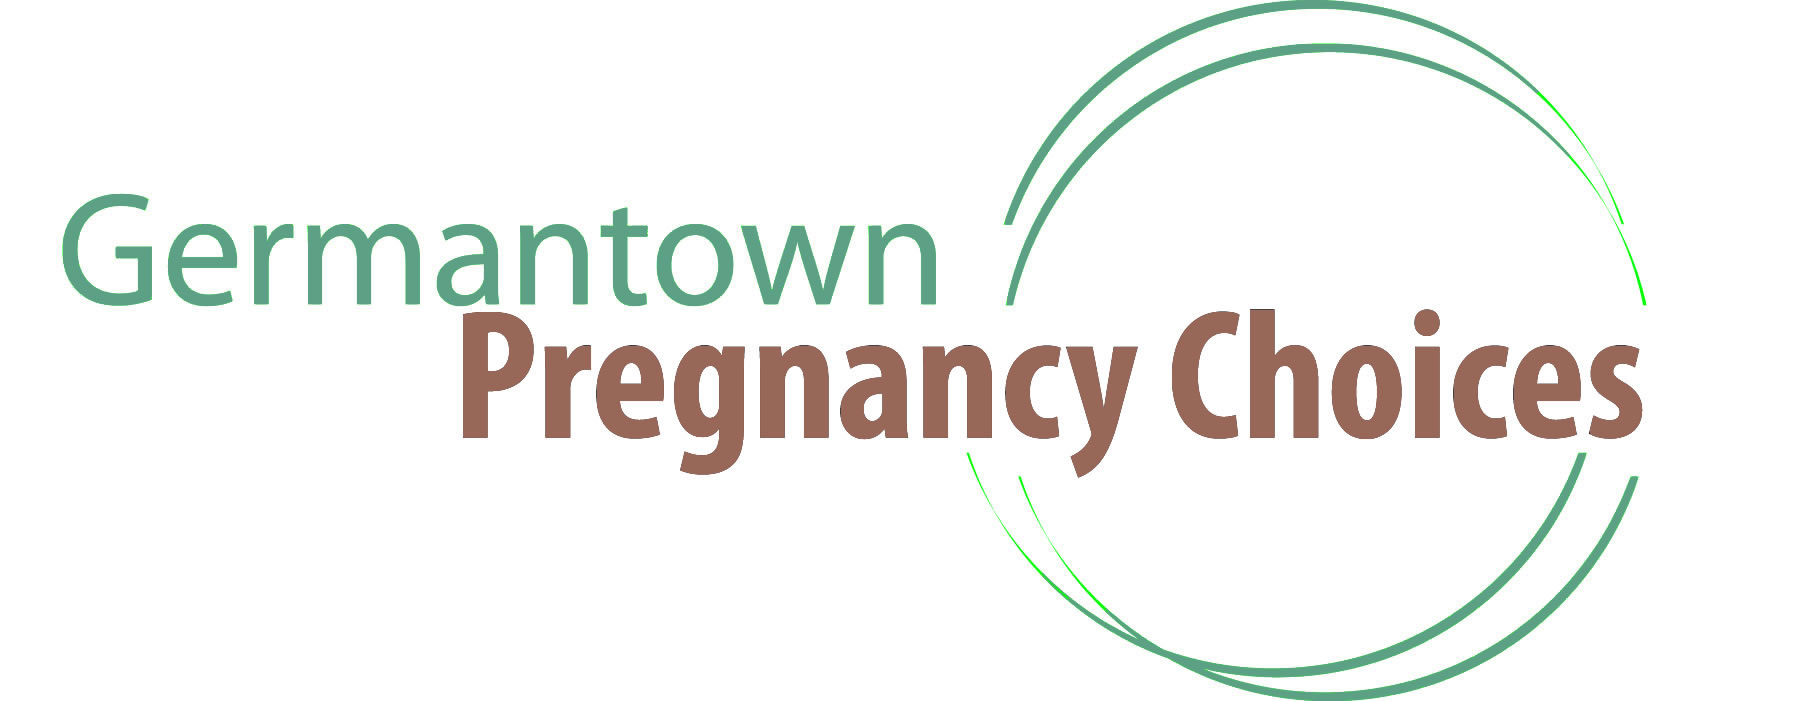 2 More Saves in Germantown This Week – 92 Lives Saved